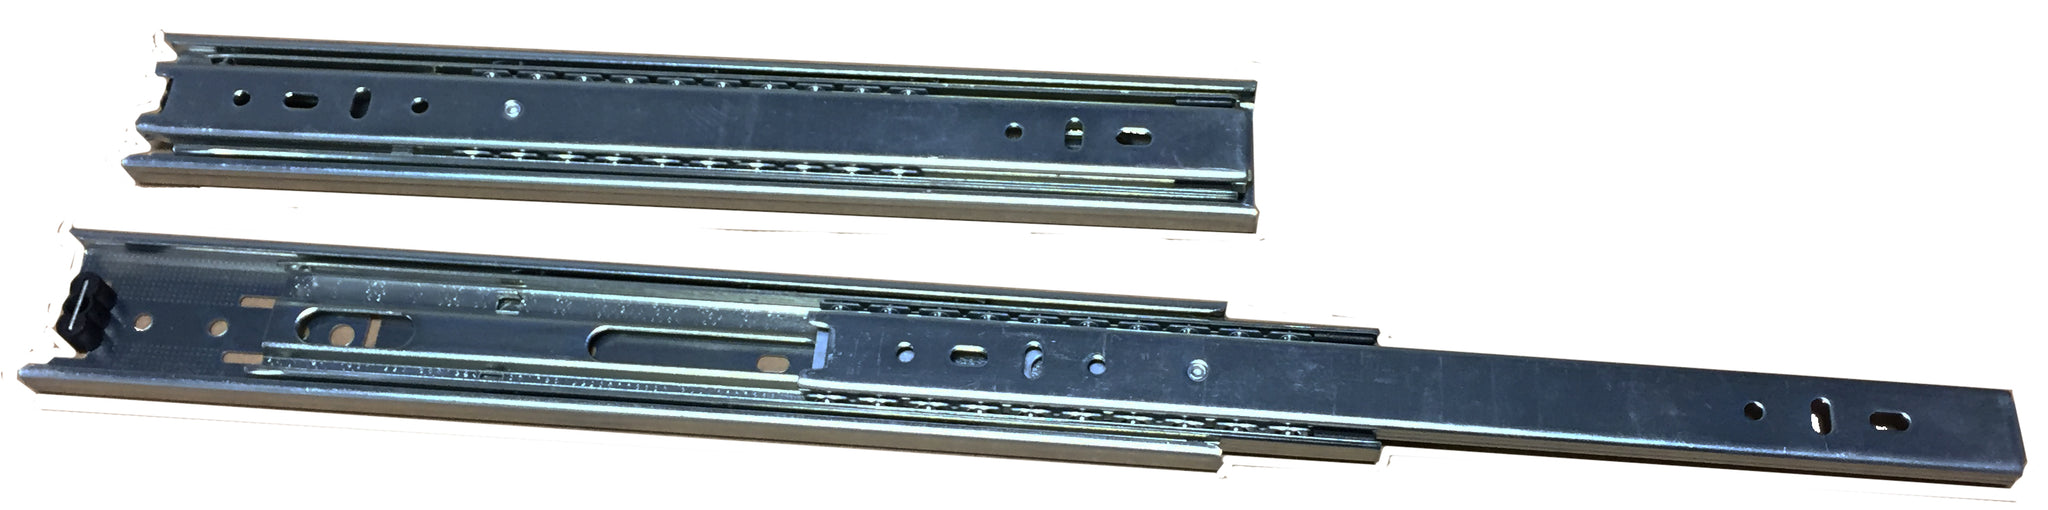 "Drawer Slides - 12"" 18"" & 24"""